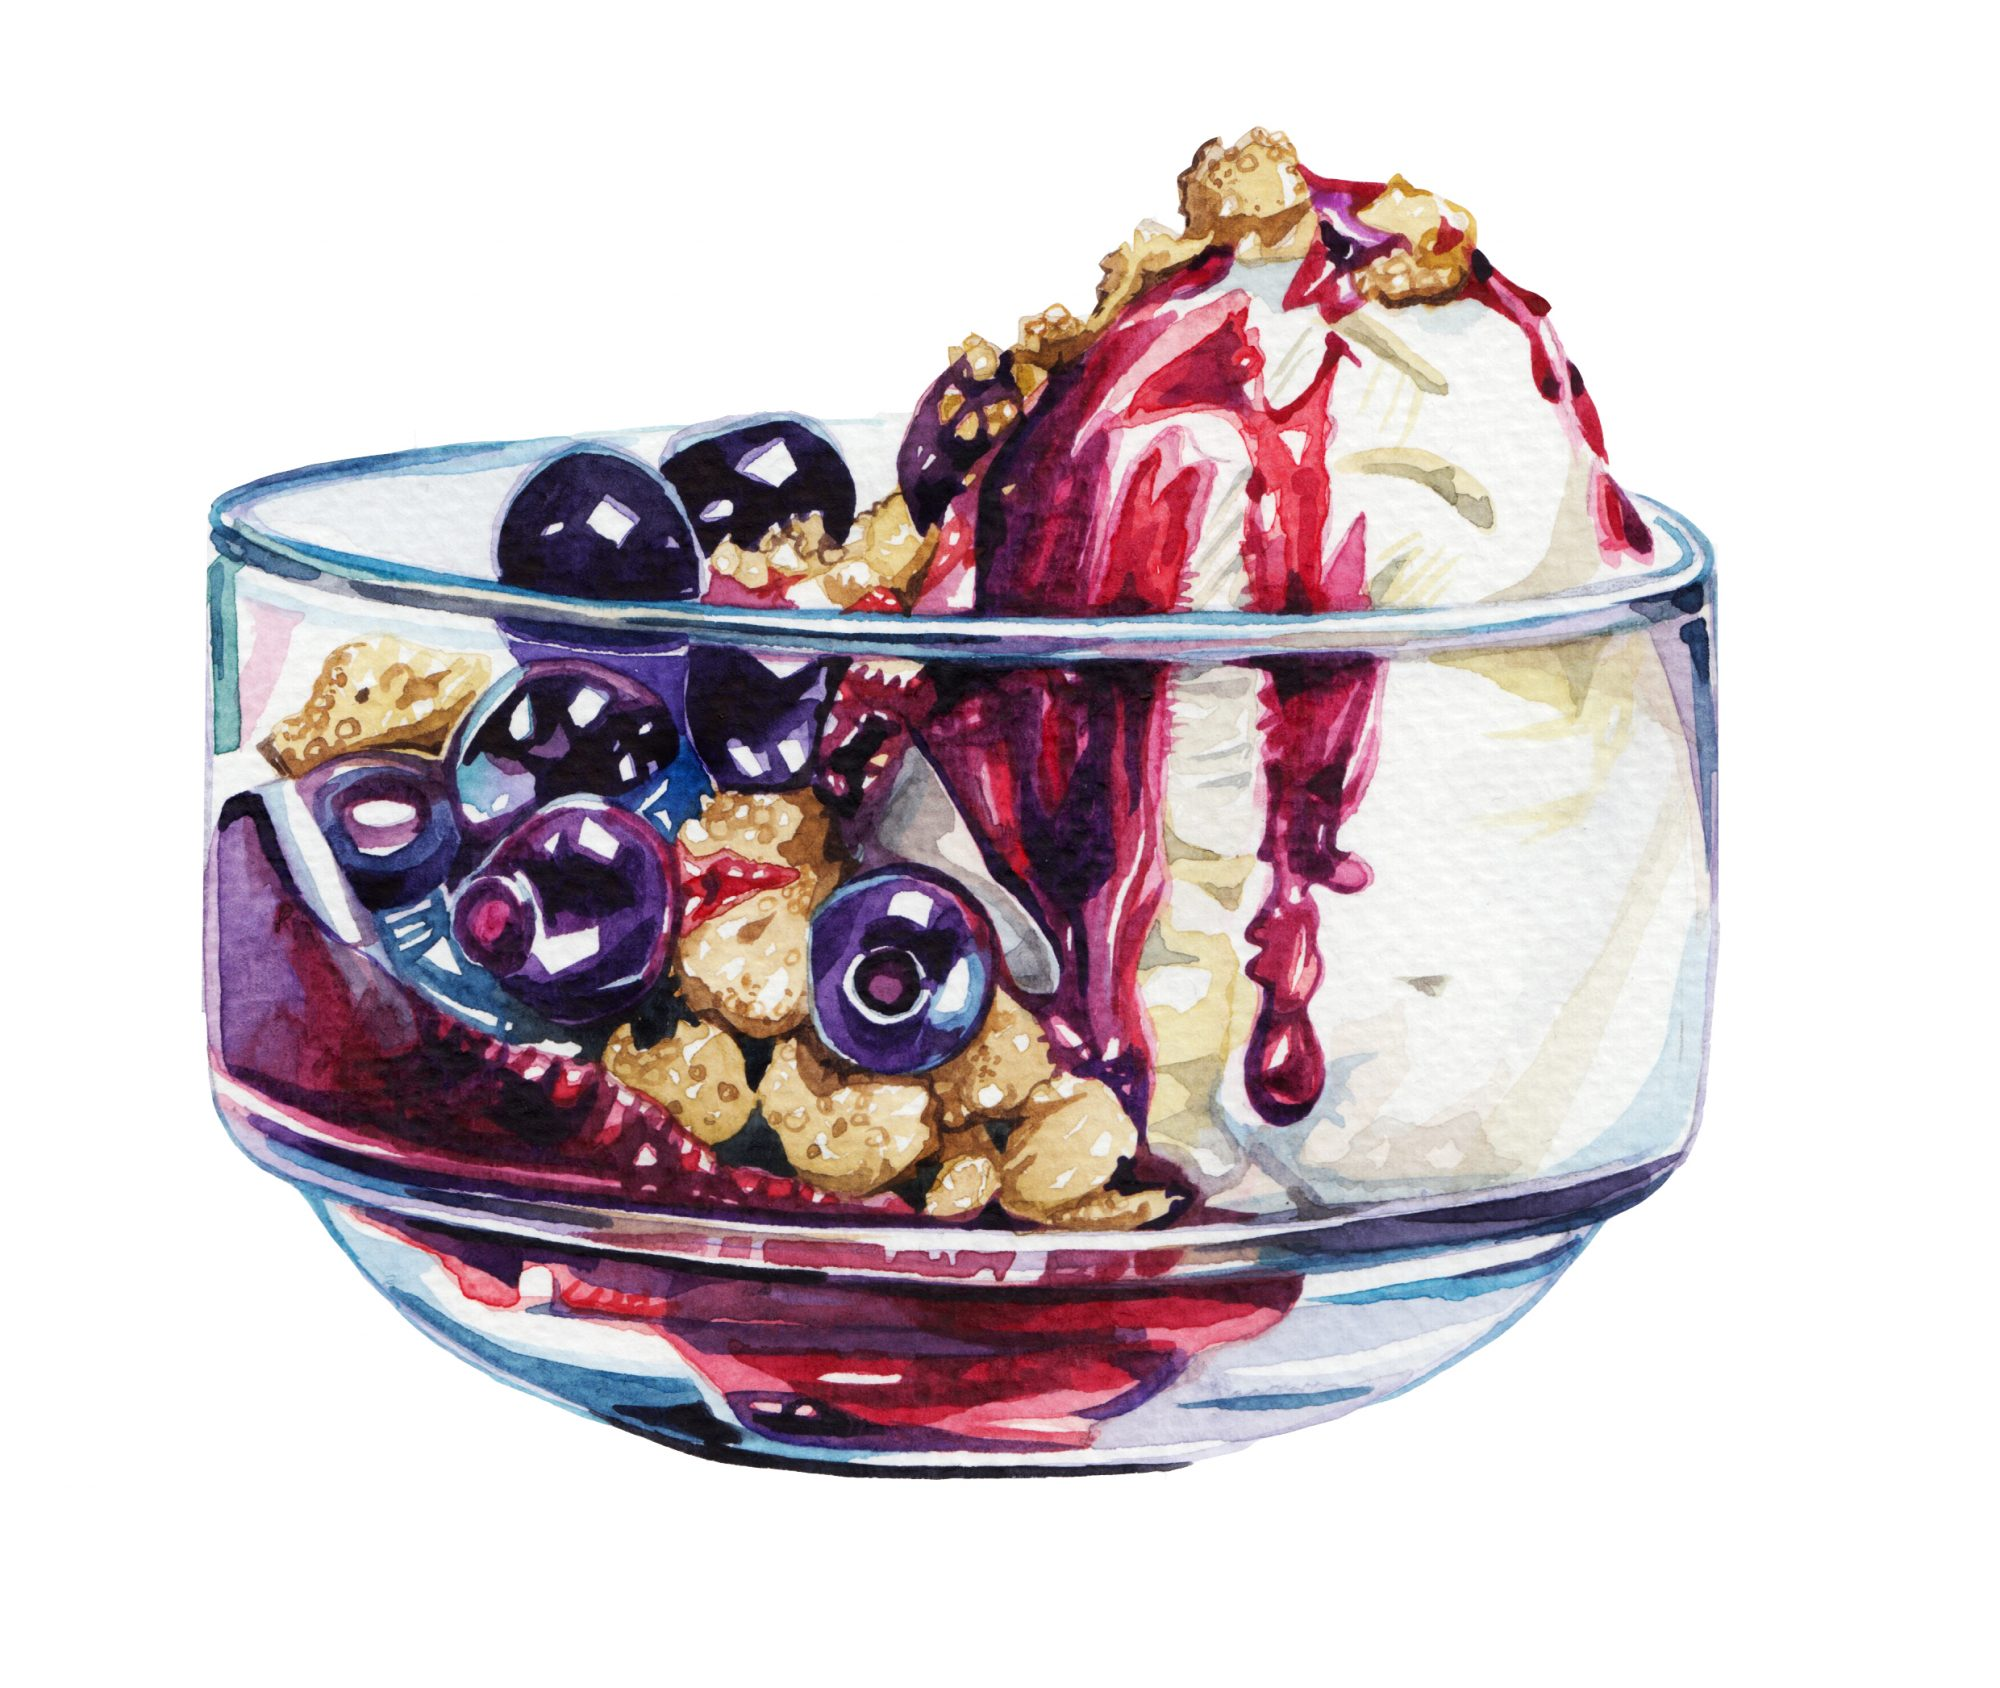 Blueberry Pie Sundaes